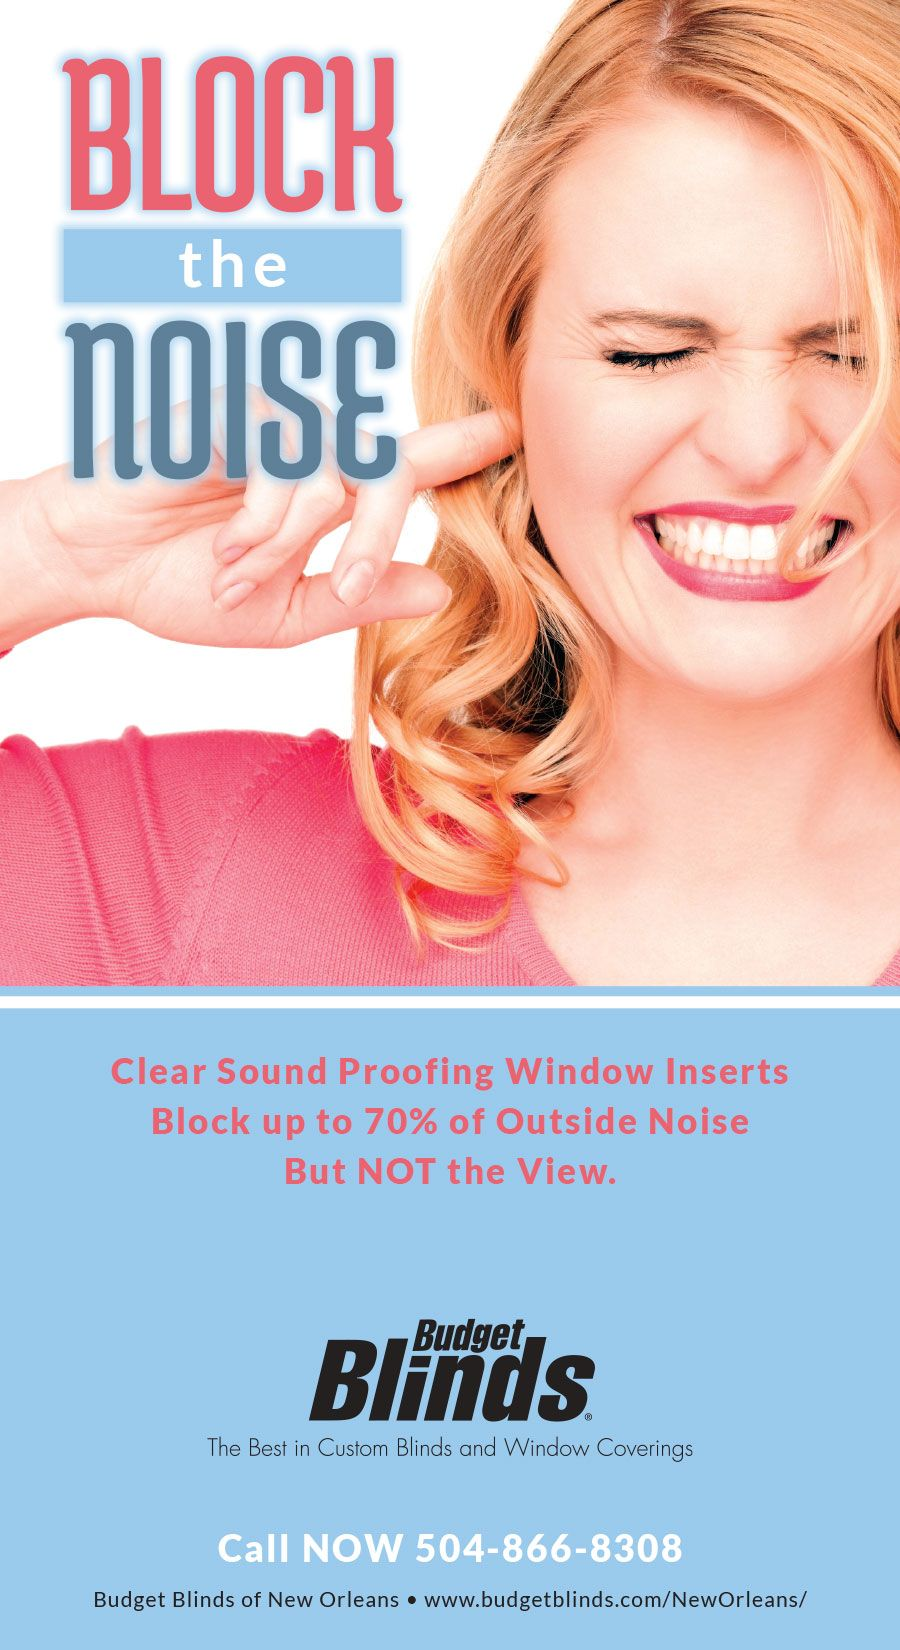 Clear acrylic interior window inserts block up to 70 of